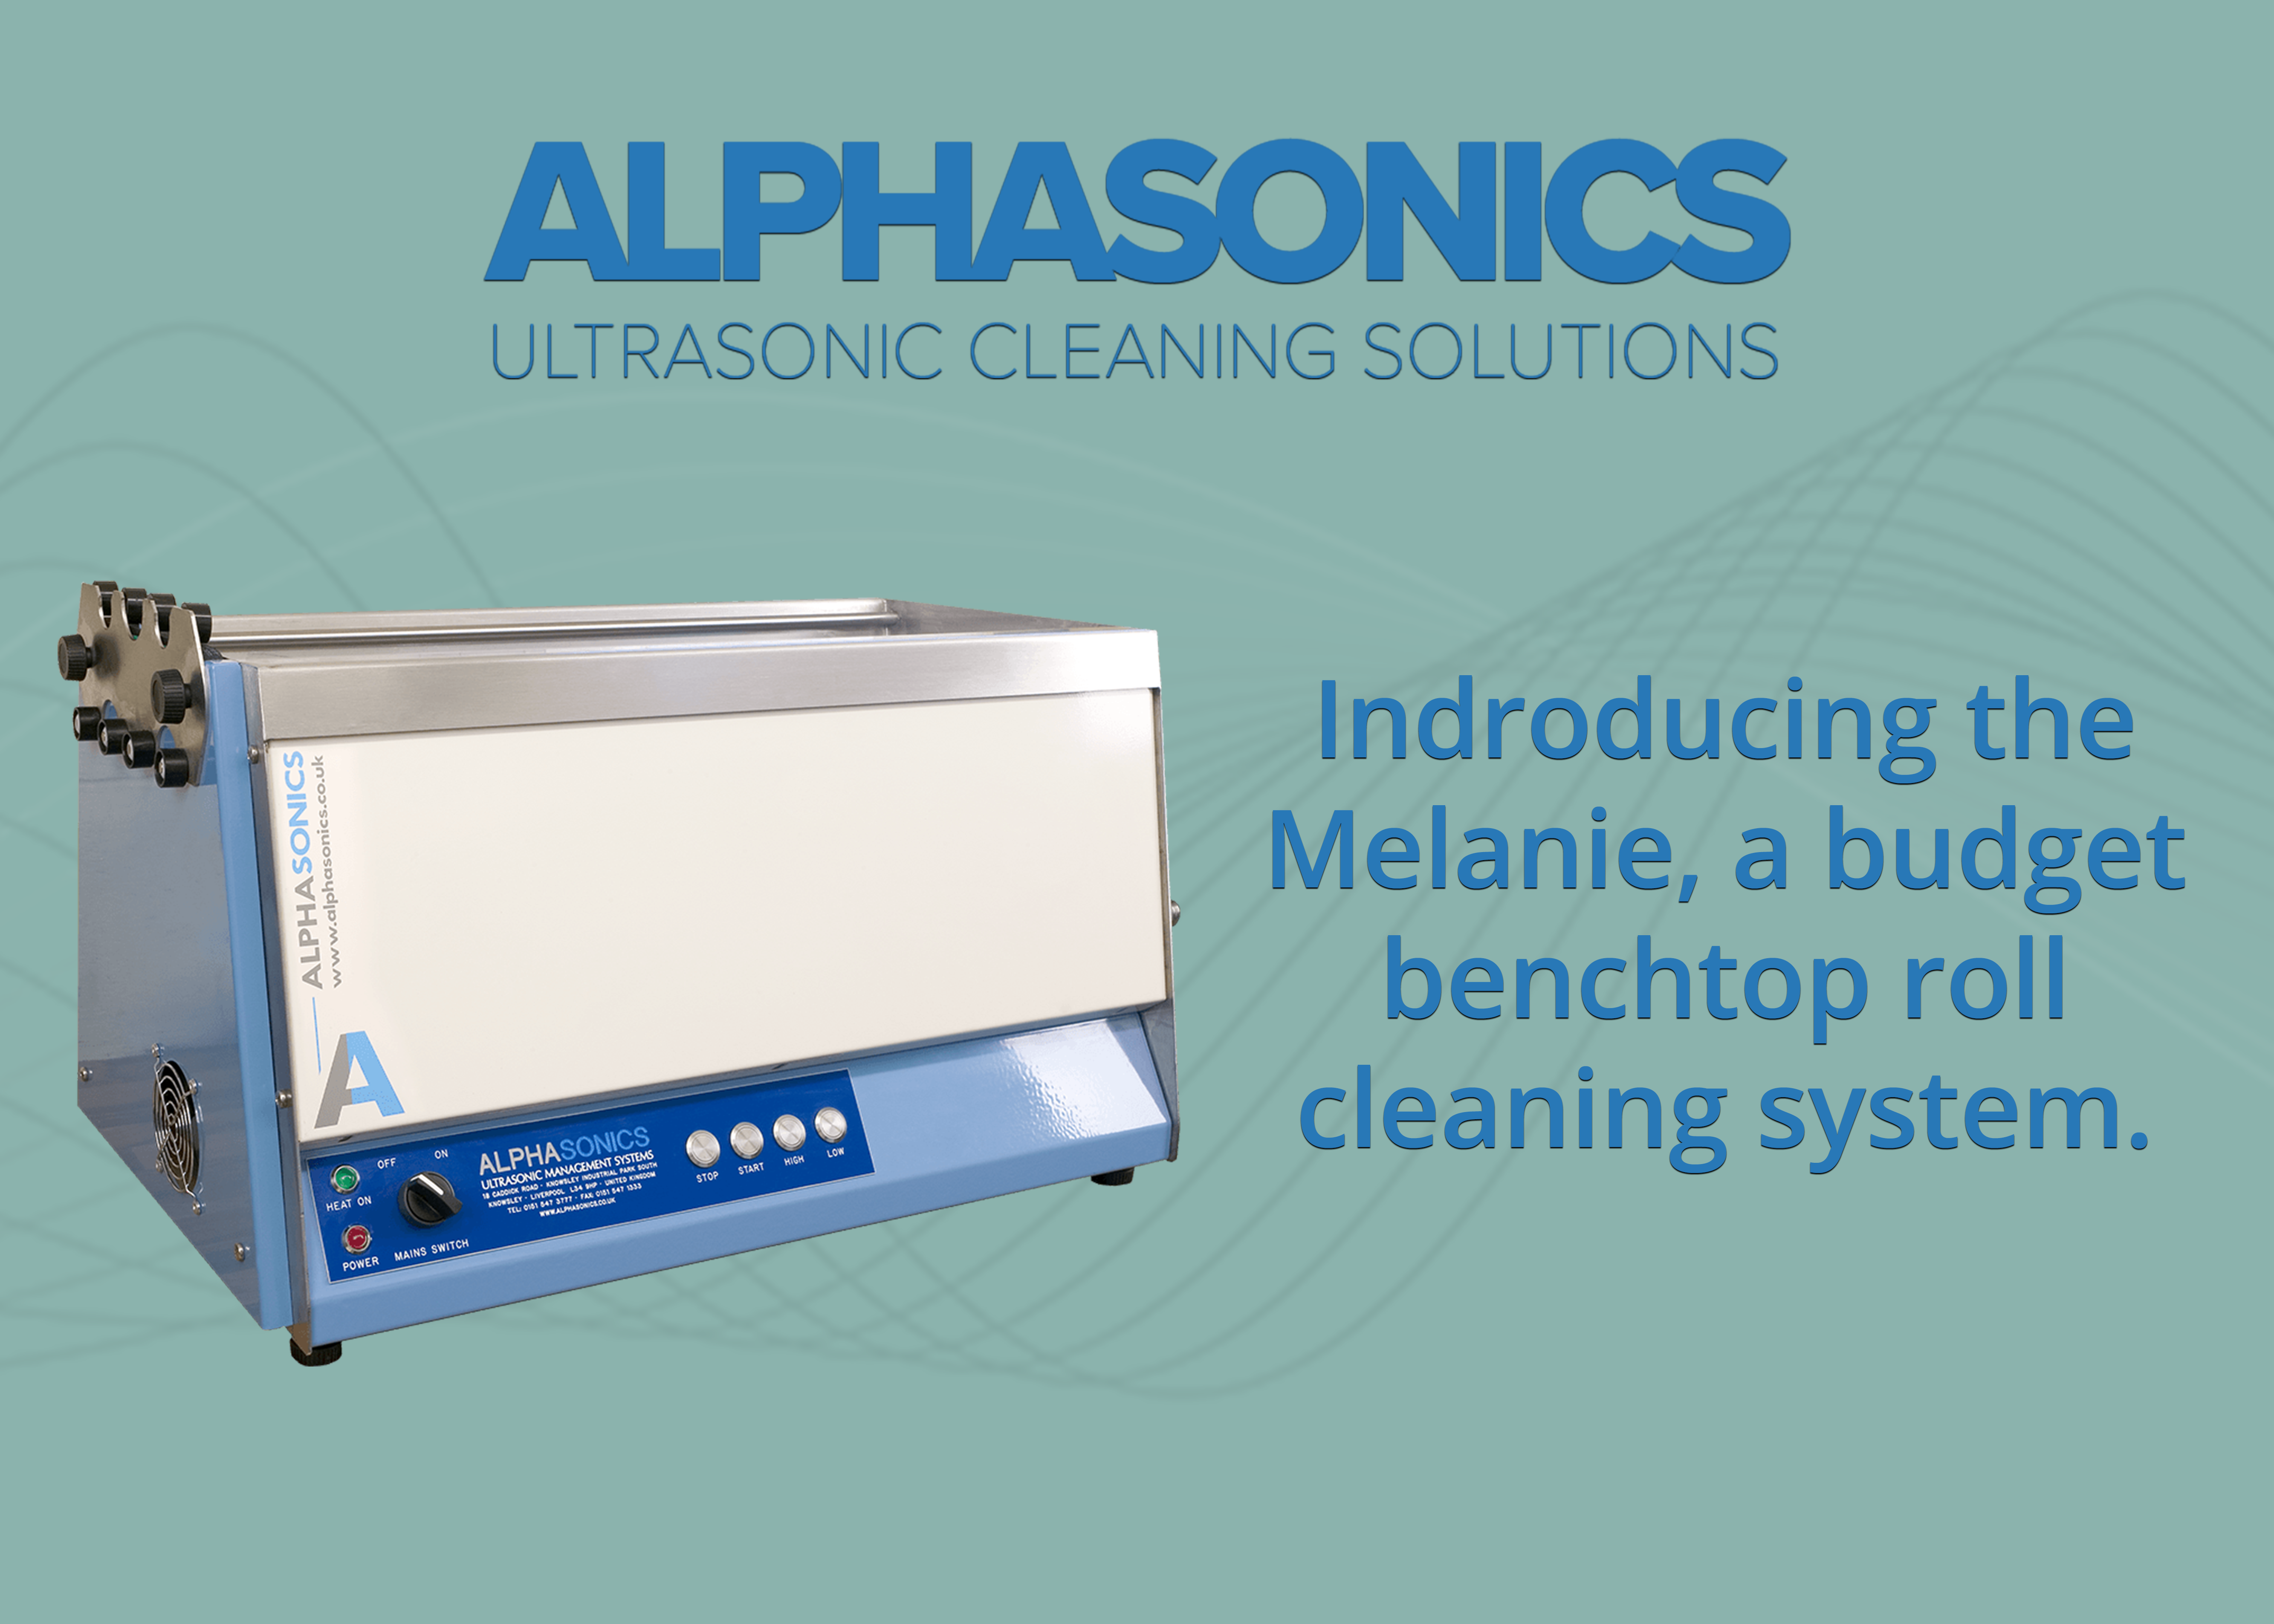 A decorative image introducing the Melanie range from Alphasonics.